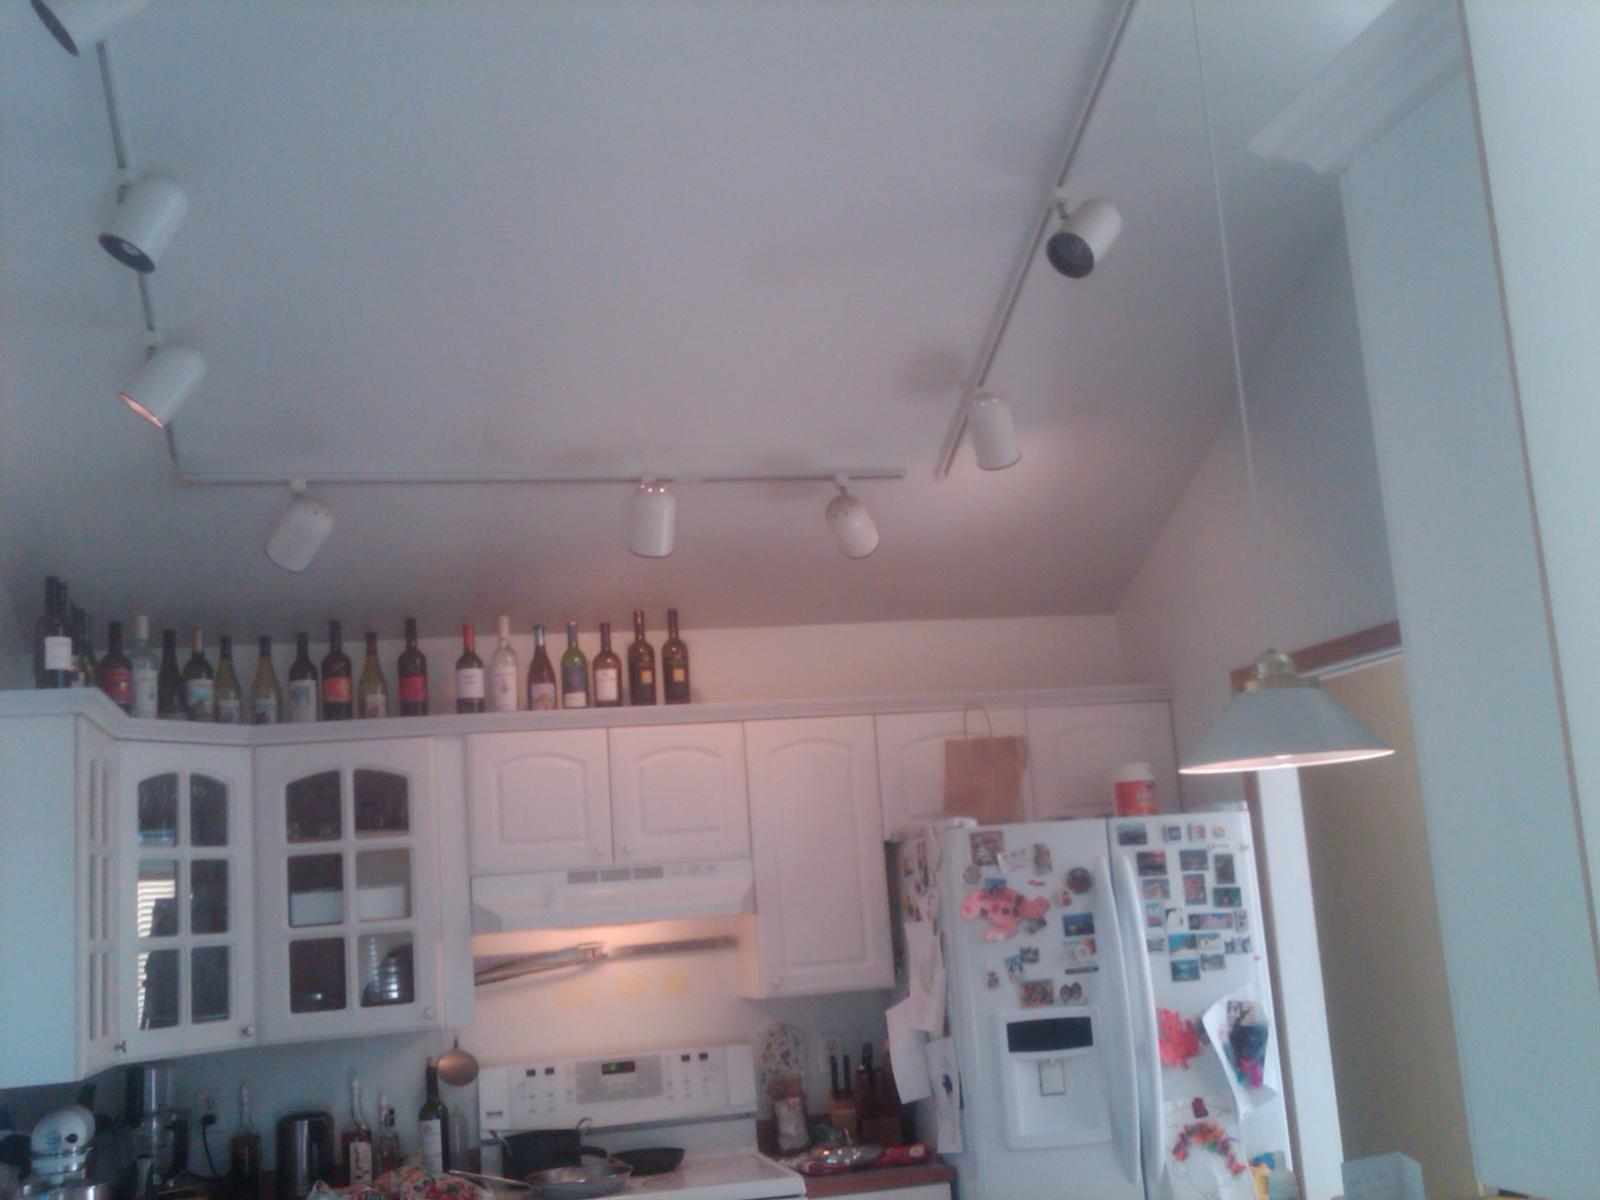 lighting for ceilings. kitchen needs lighting solution and iu0027m stumped for ceilings n